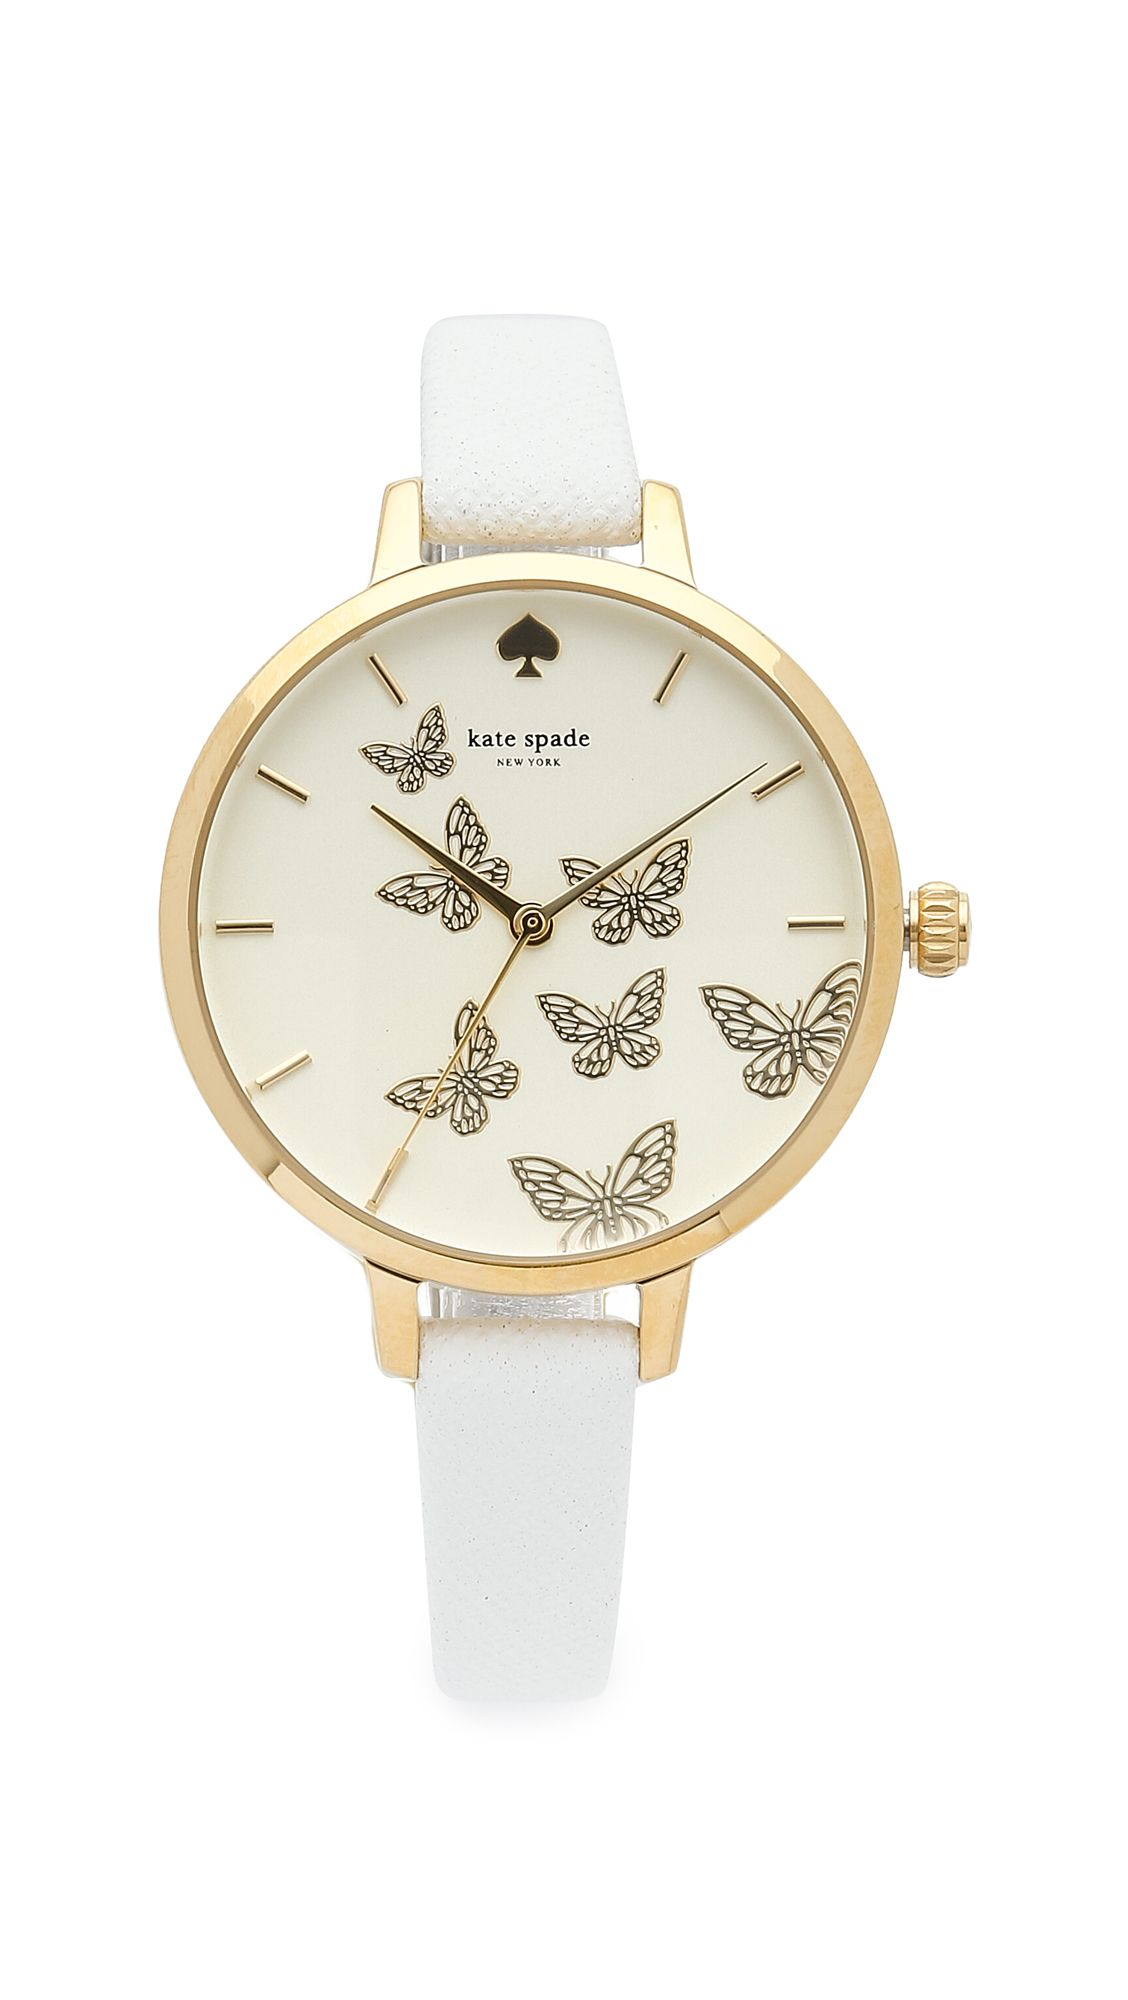 Kate Spade New York Metro Butterflies Watch Http Www Modandretro Com Kate Spade New York Metro Butterflies Watch Kadin Saat Kate Spade Aksesuarlar